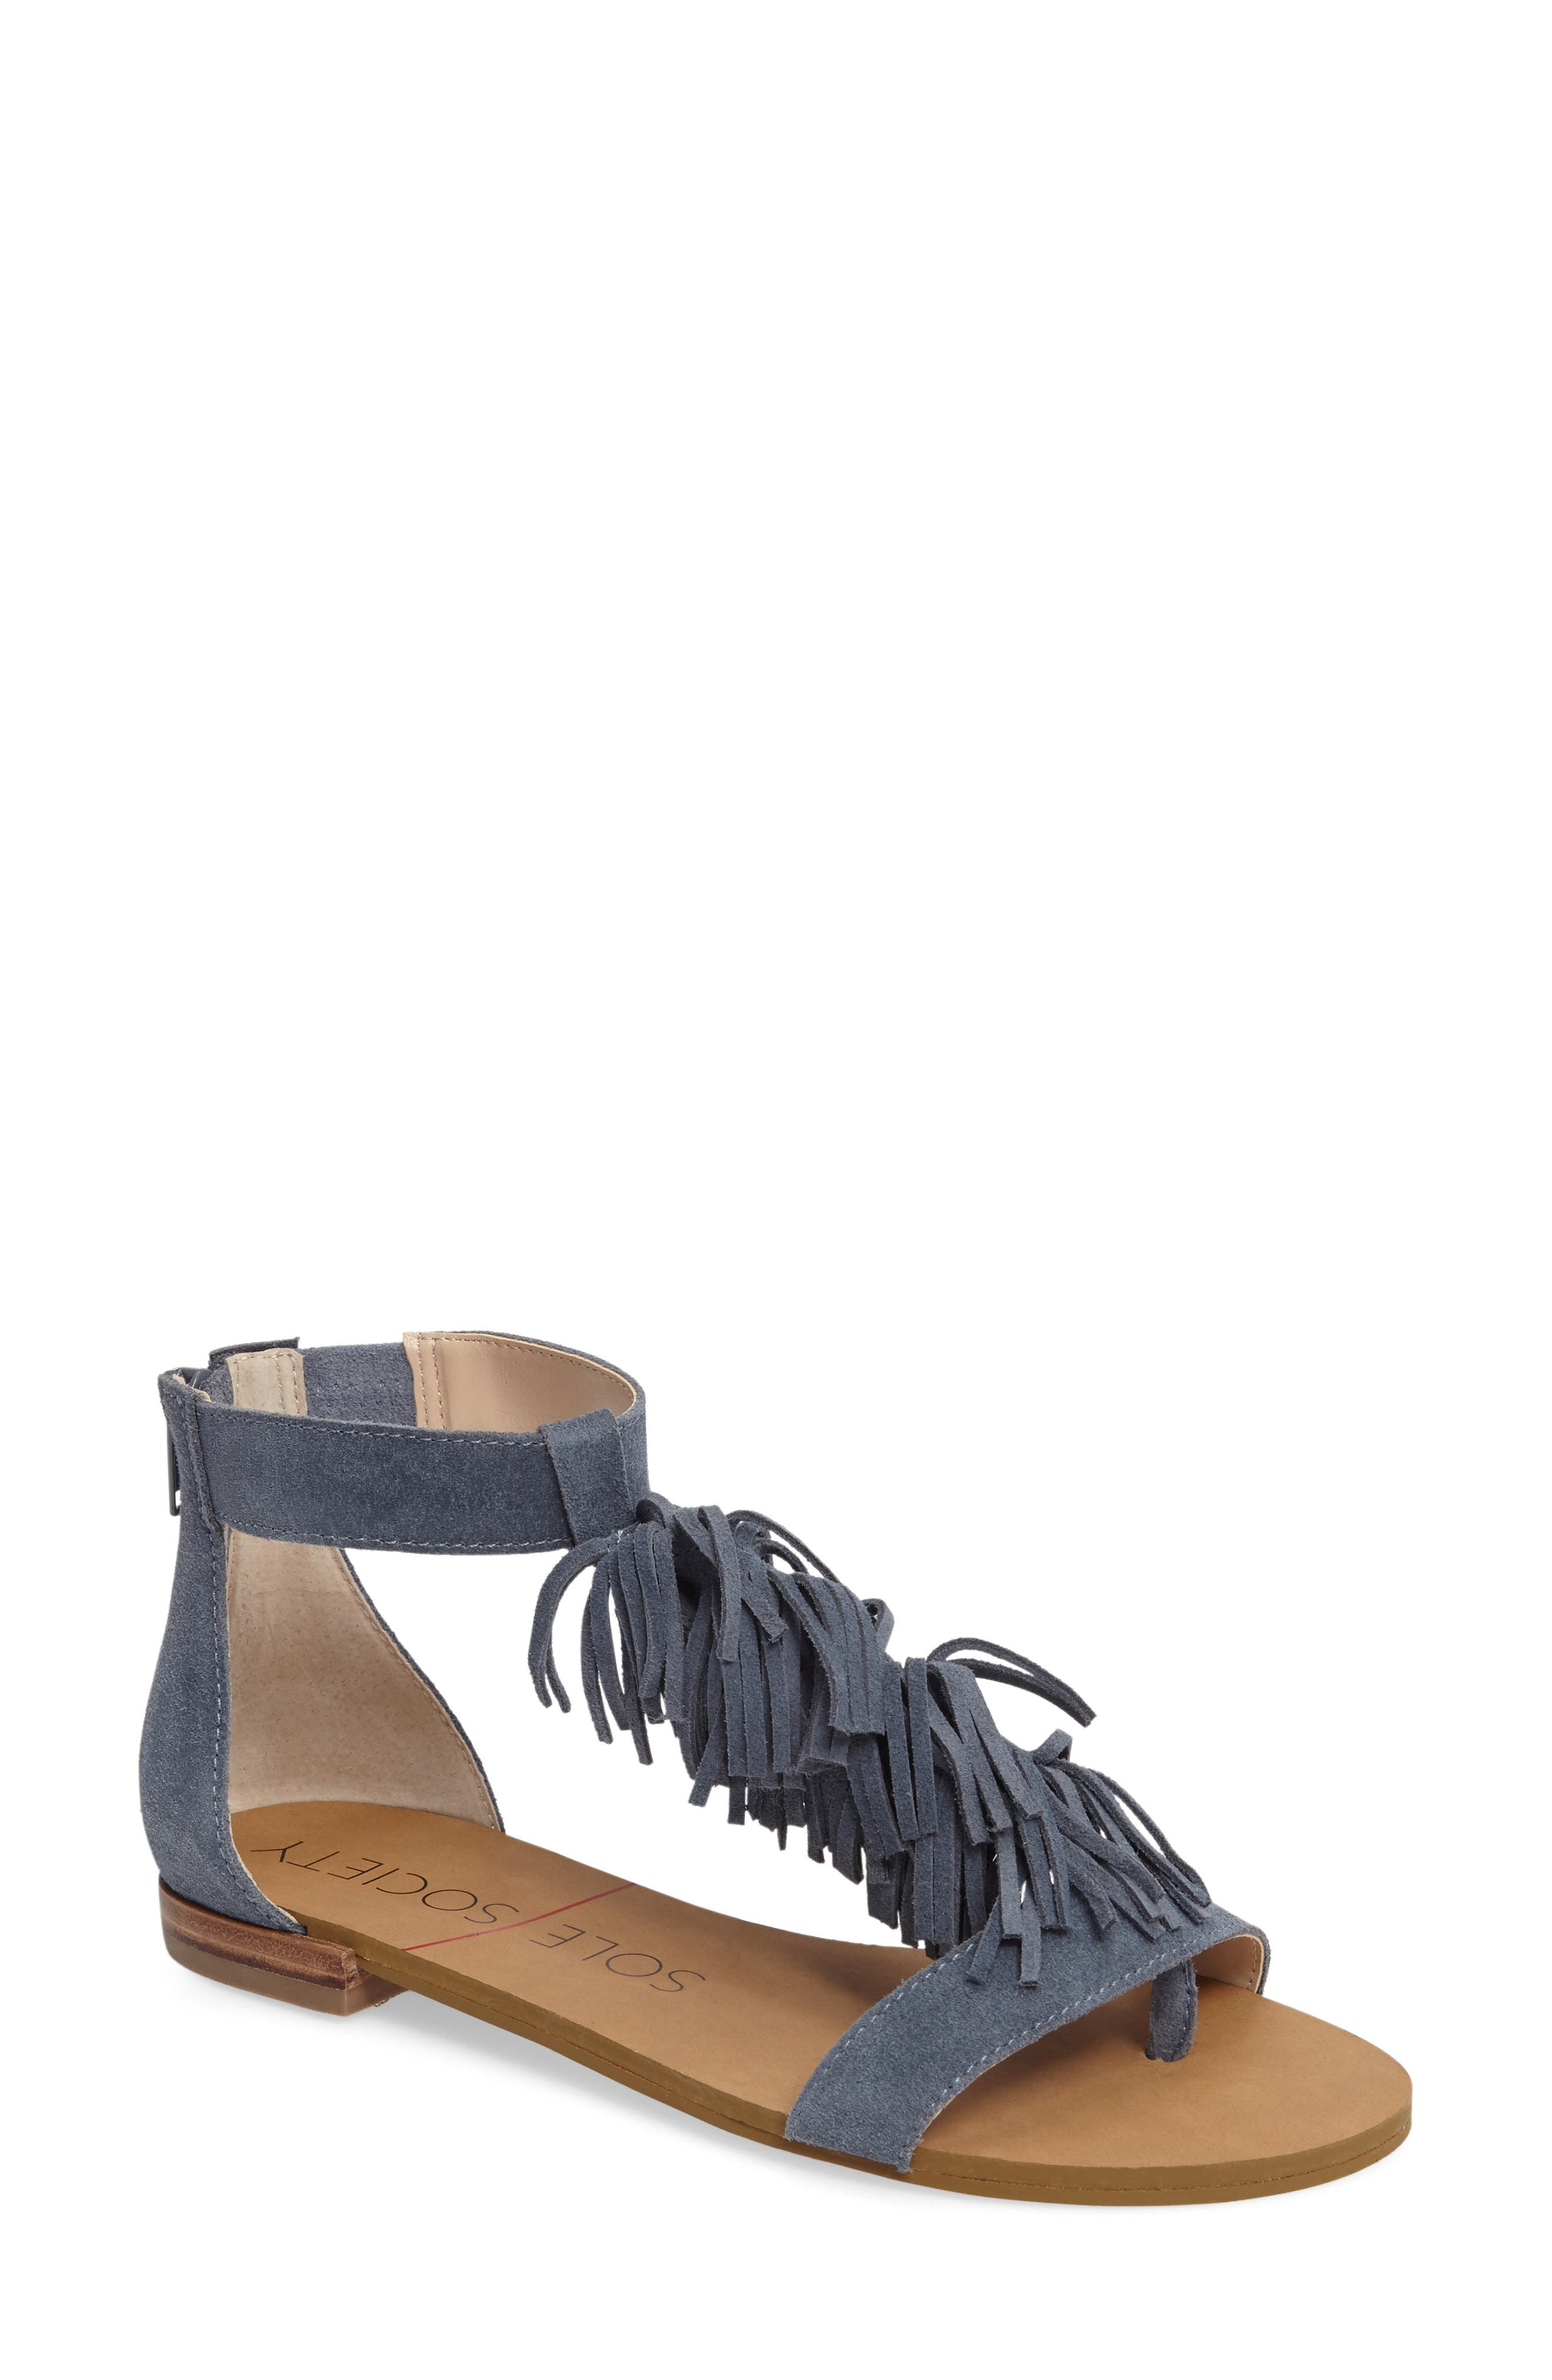 Alternate Image 1 Selected - Sole Society Koa Fringed T-Strap Sandal (Women)